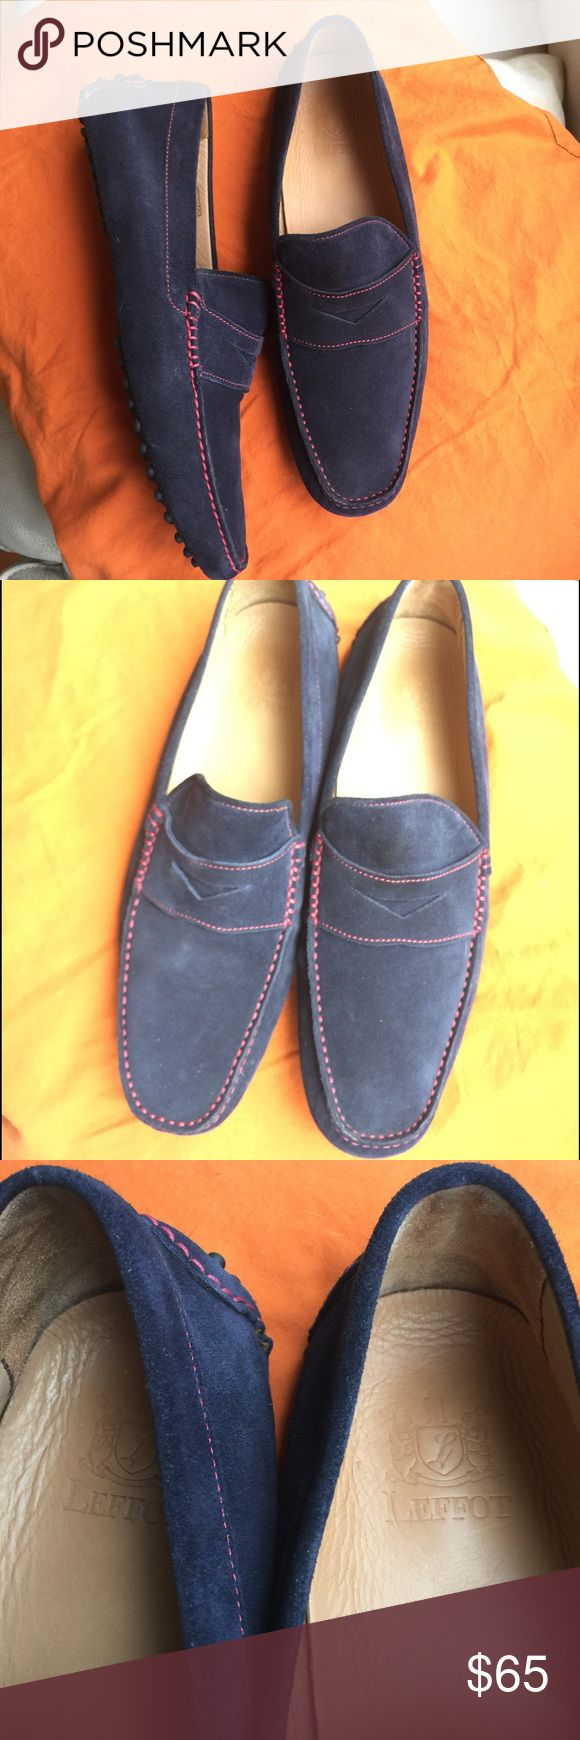 Leffot driving loafers shoes 42 Leffot driving shoes. Loafers. Navy blue. Genuine leather. Very high end NY and London brand. EUC. Marked size 42, which European men's 9. Per my hubbie, fits true to 9.5 , but his foot too wide. So, I would say for regular or narrower feet will work better. Leffot Shoes Loafers & Slip-Ons